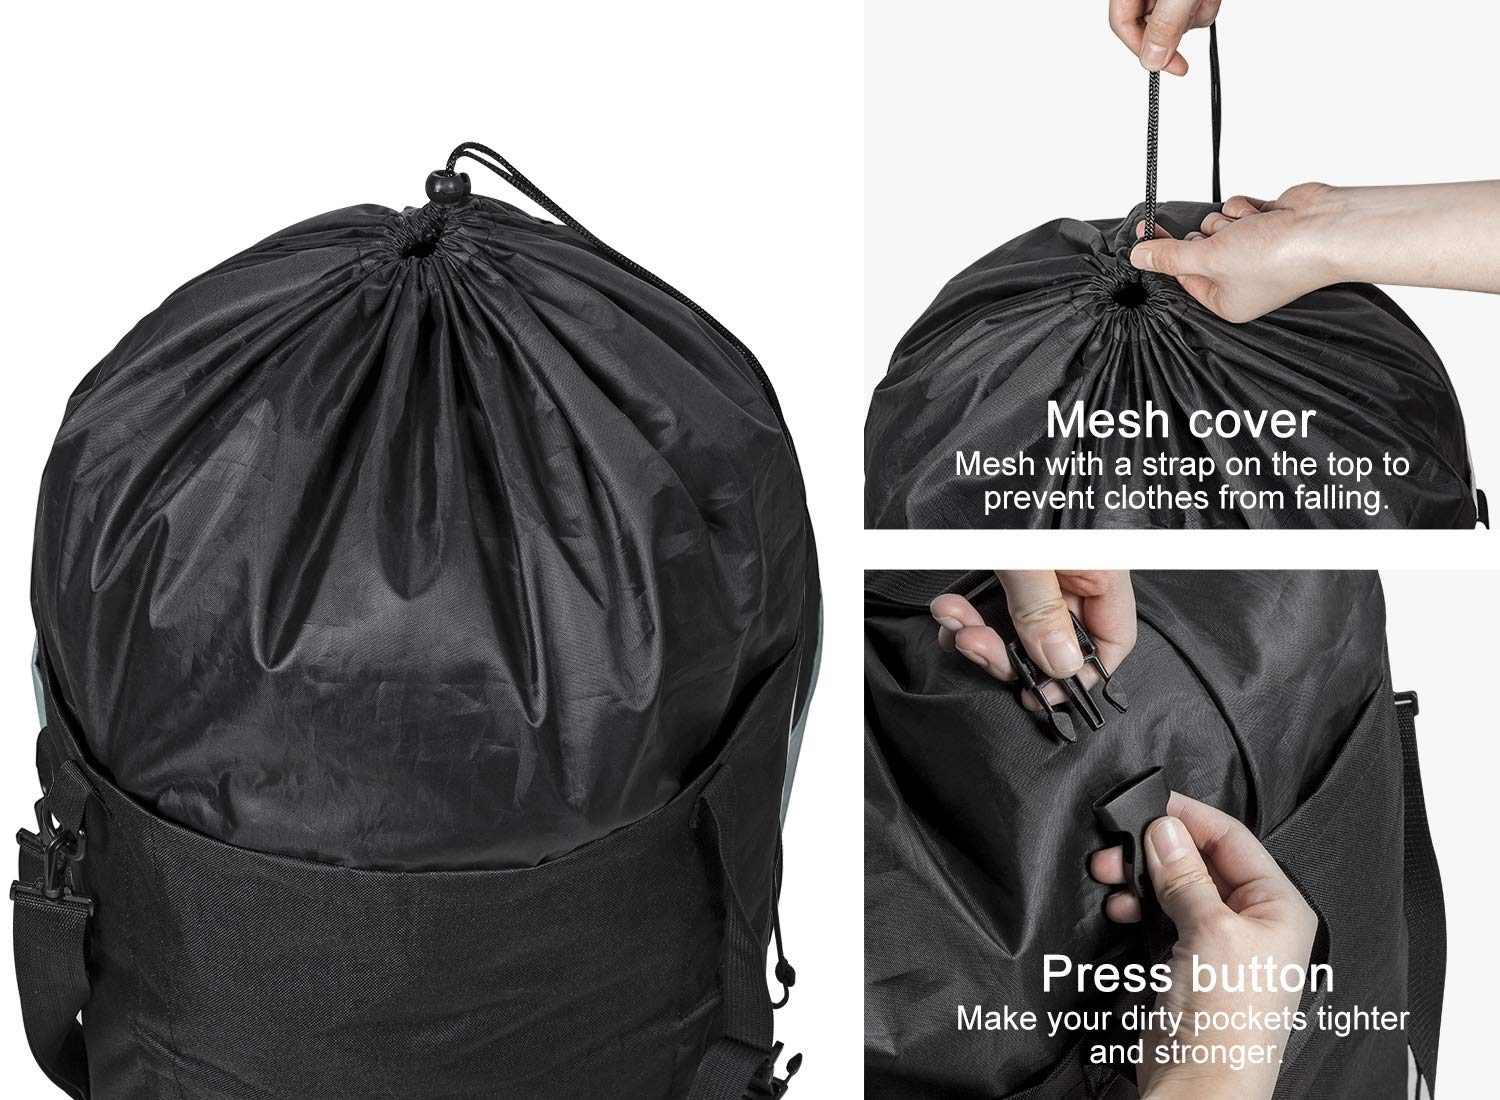 WISHPOOL 106L Collapsible Laundry Bag Backpack Laundry Liner Extra Large Laundry Basket Foldable Laundry Hamper Dirty Clothes Hamper for Laundry (Black)